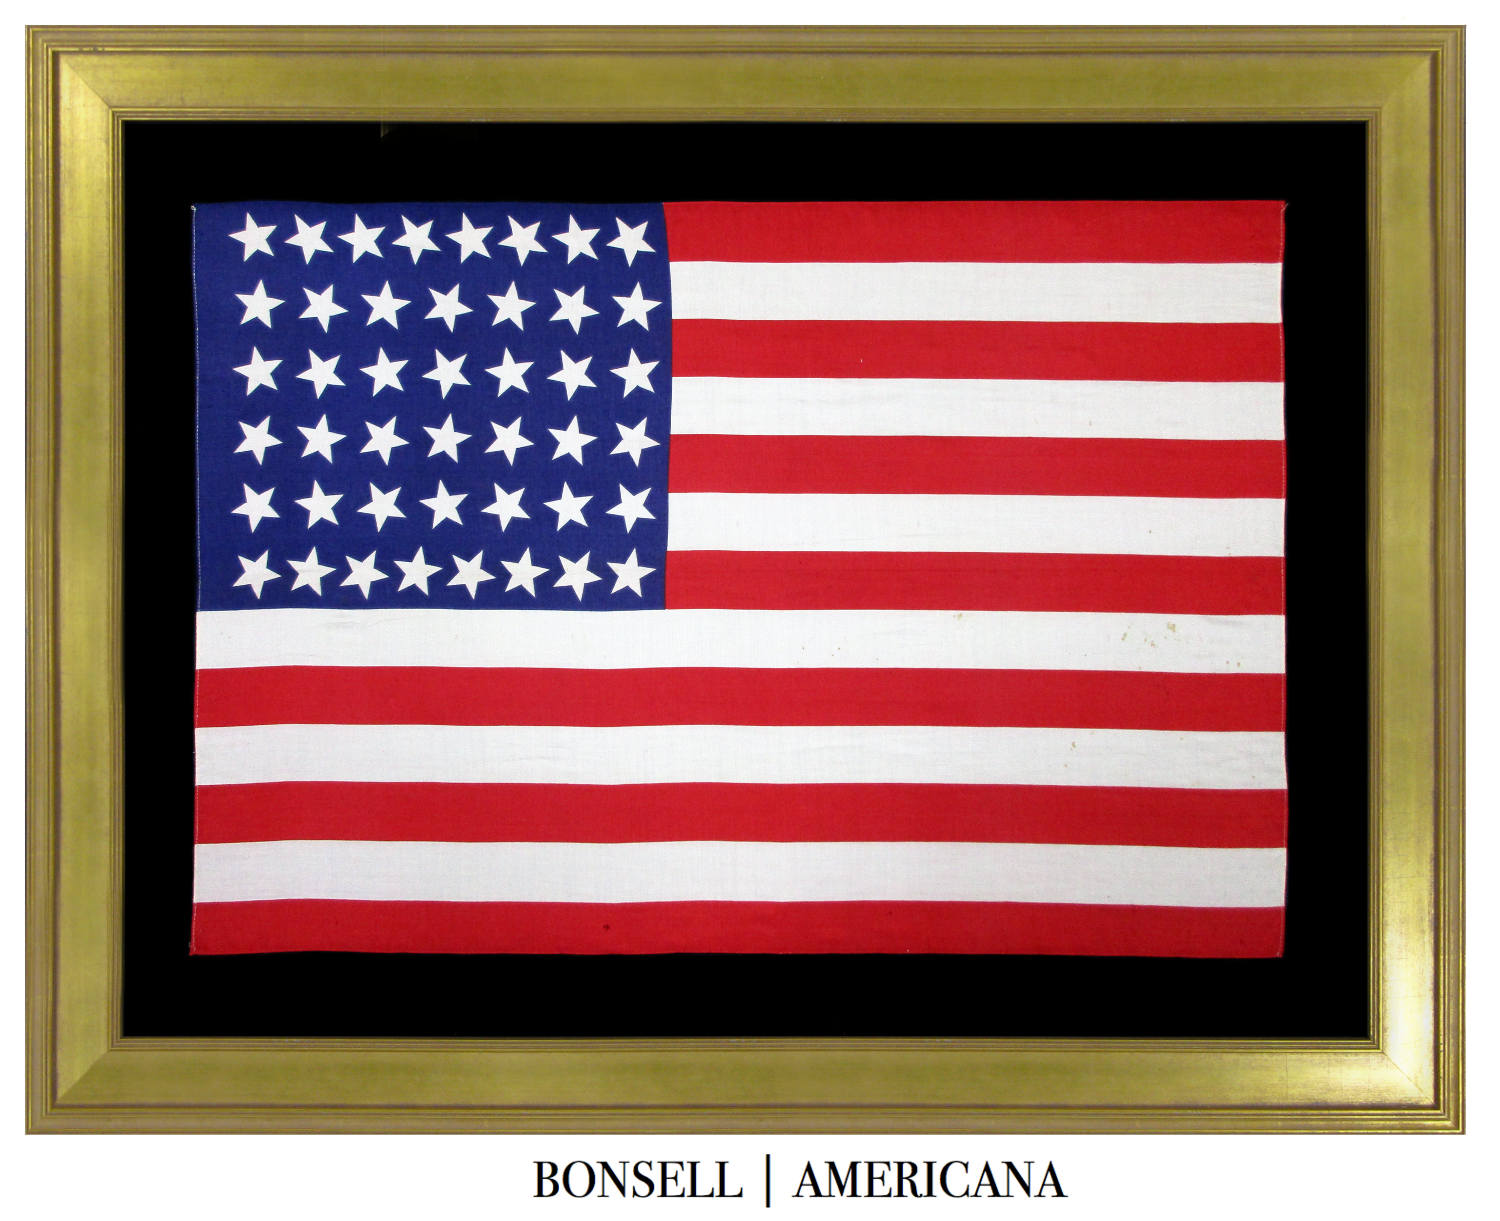 44 Star Antique American Flag with Canted Stars